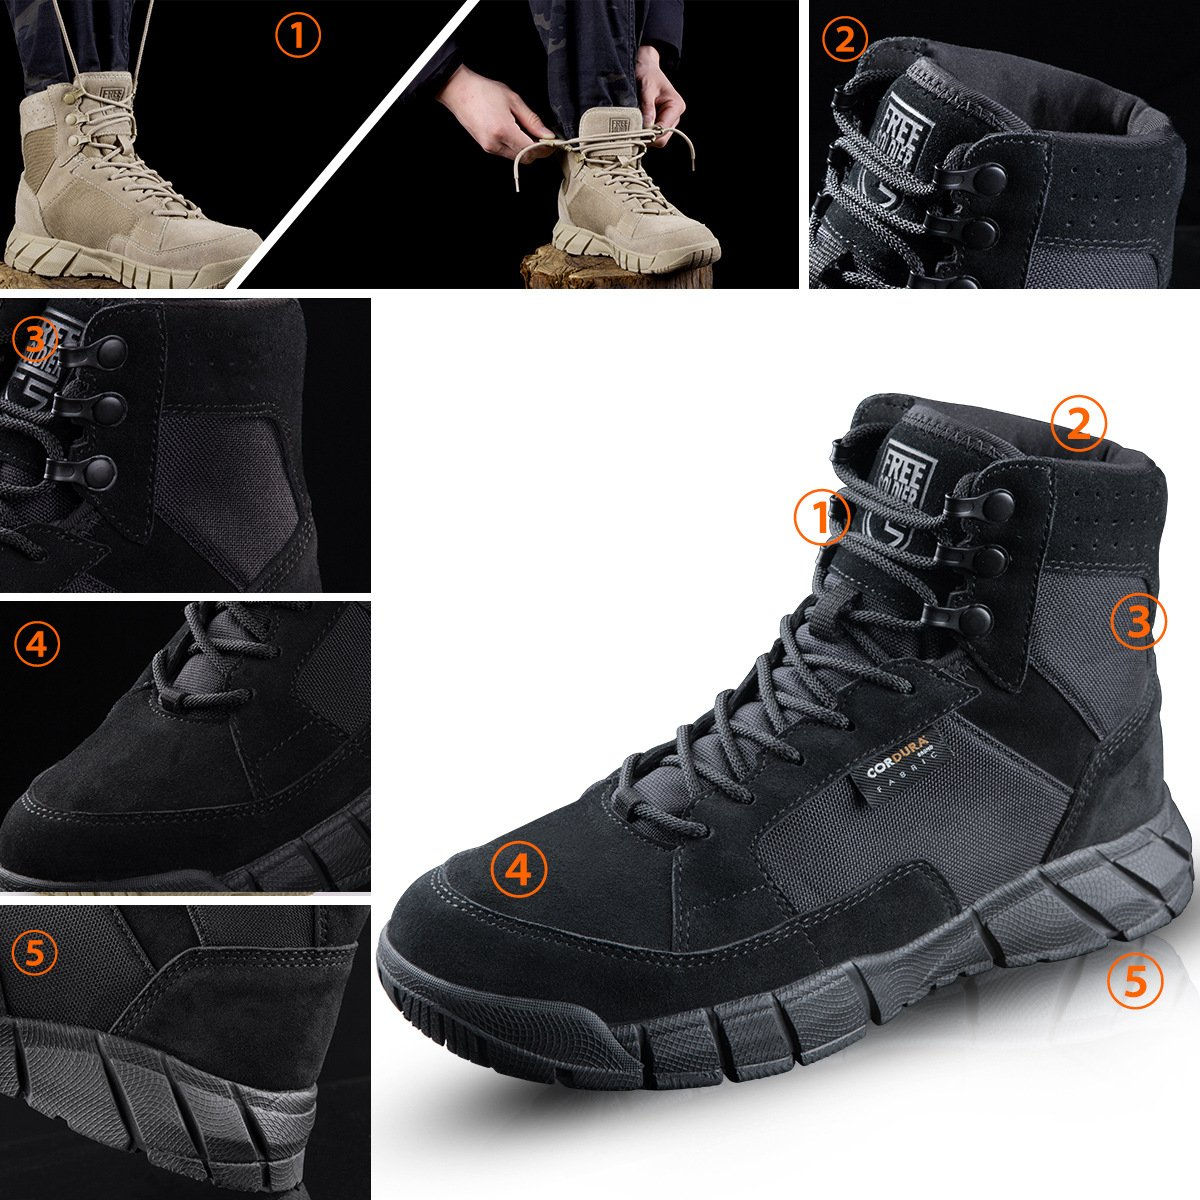 Men's Tactical Boots 6'' inch Lightweight Military Boots for Hiking Work Boots Breathable Desert Boots (Black, 8) by FREE SOLDIER (Image #3)